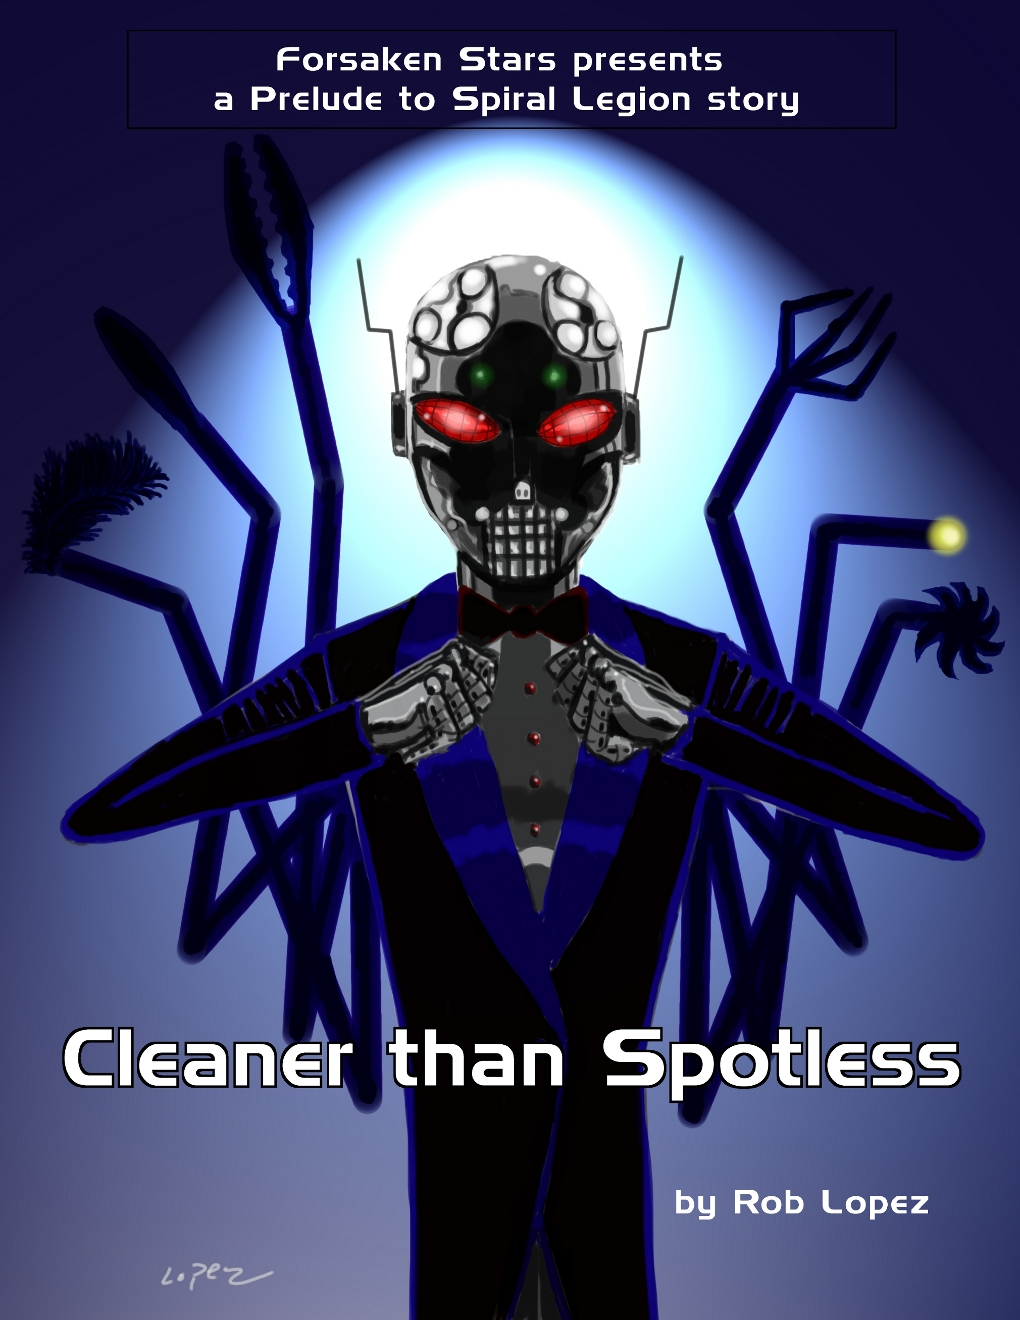 A Prelude to Spiral Legion Story: Cleaner than Spotless